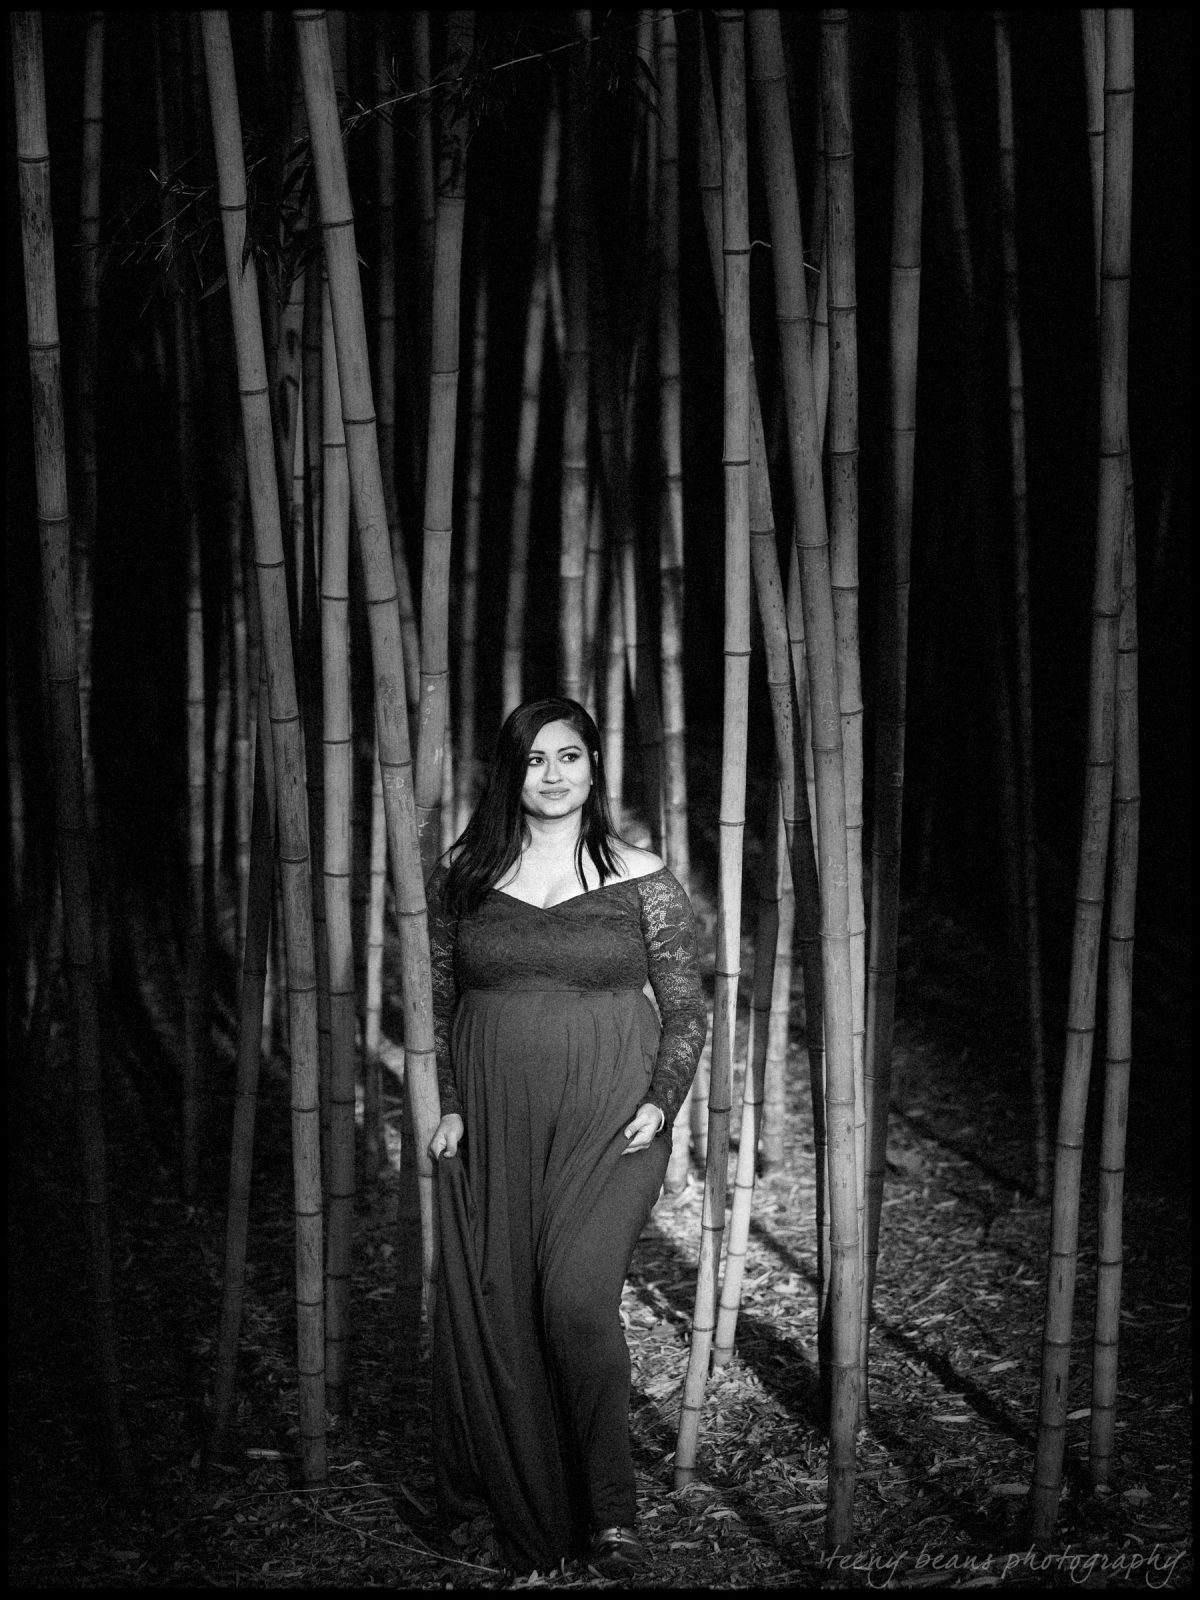 duke gardens maternity portrait photography yashika 6